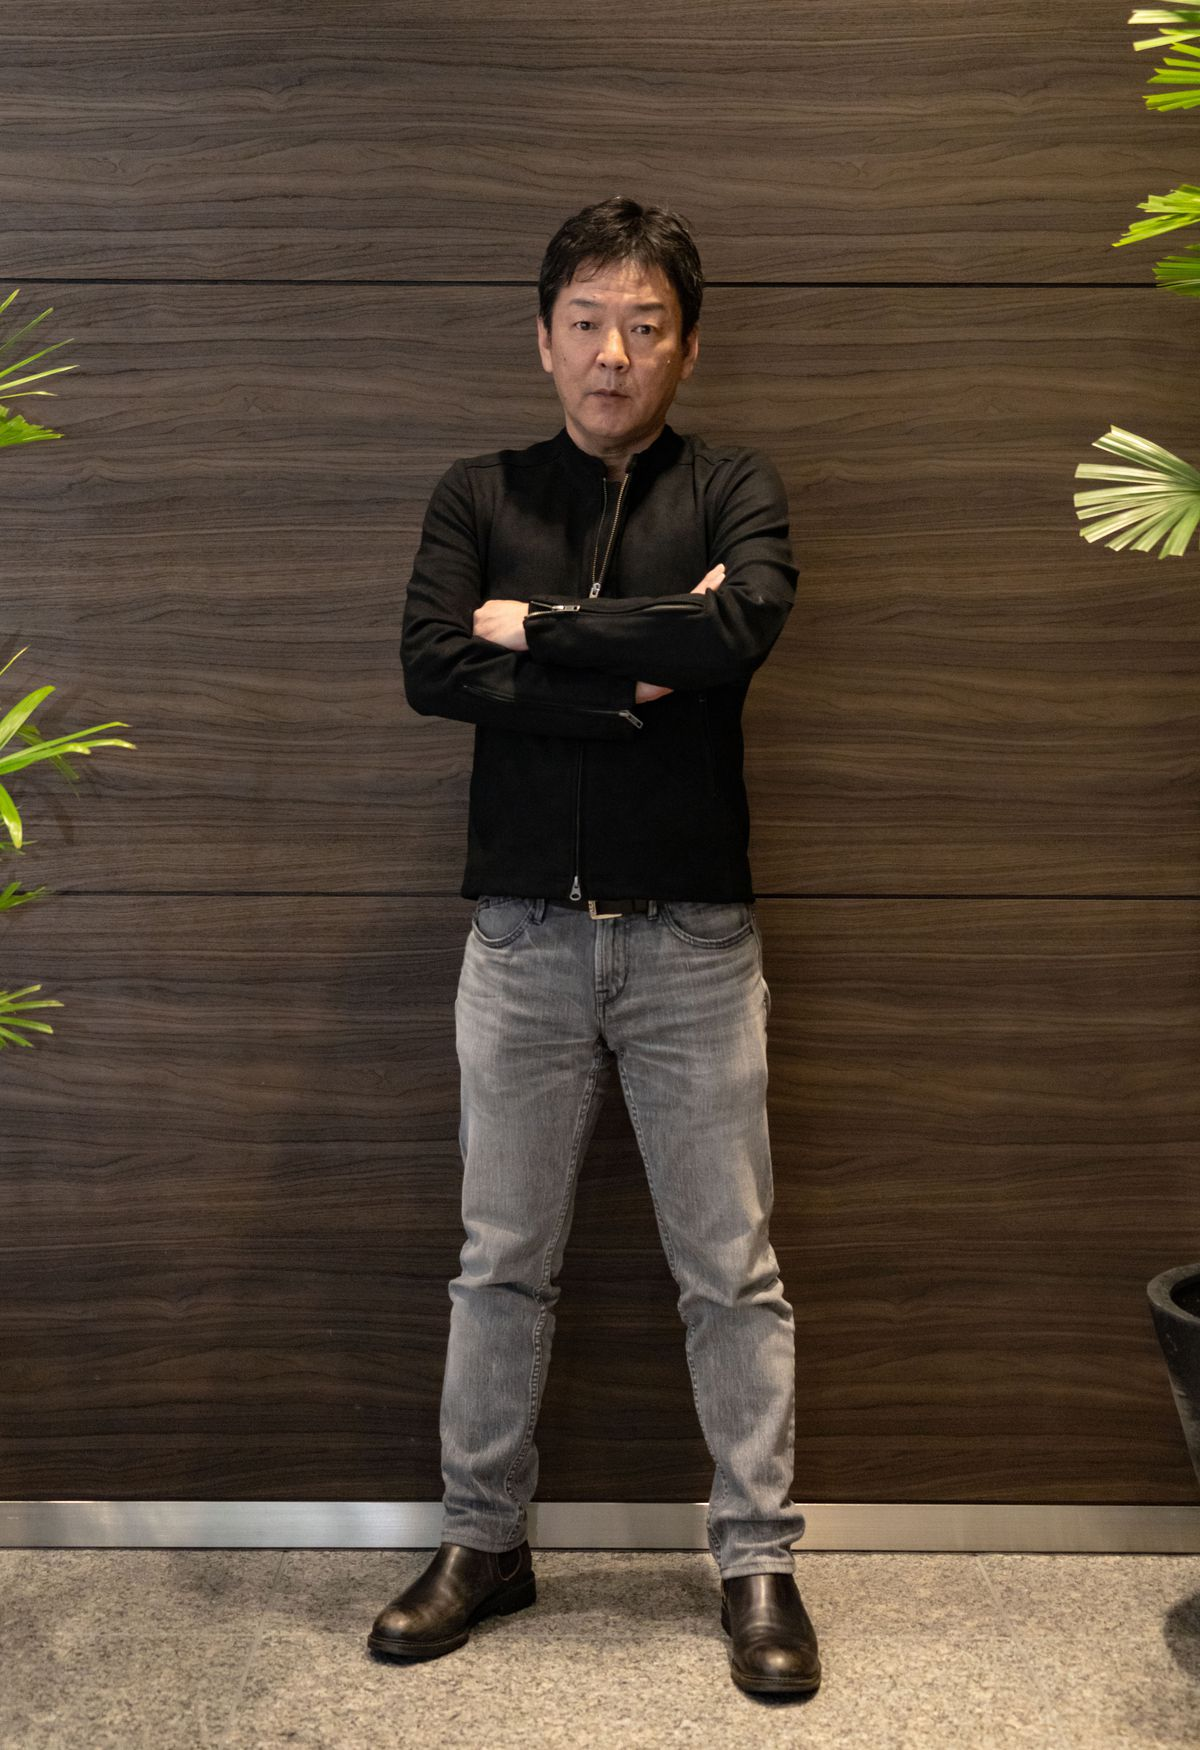 Tokuro Faujiwara, creator of Ghosts 'n Goblins